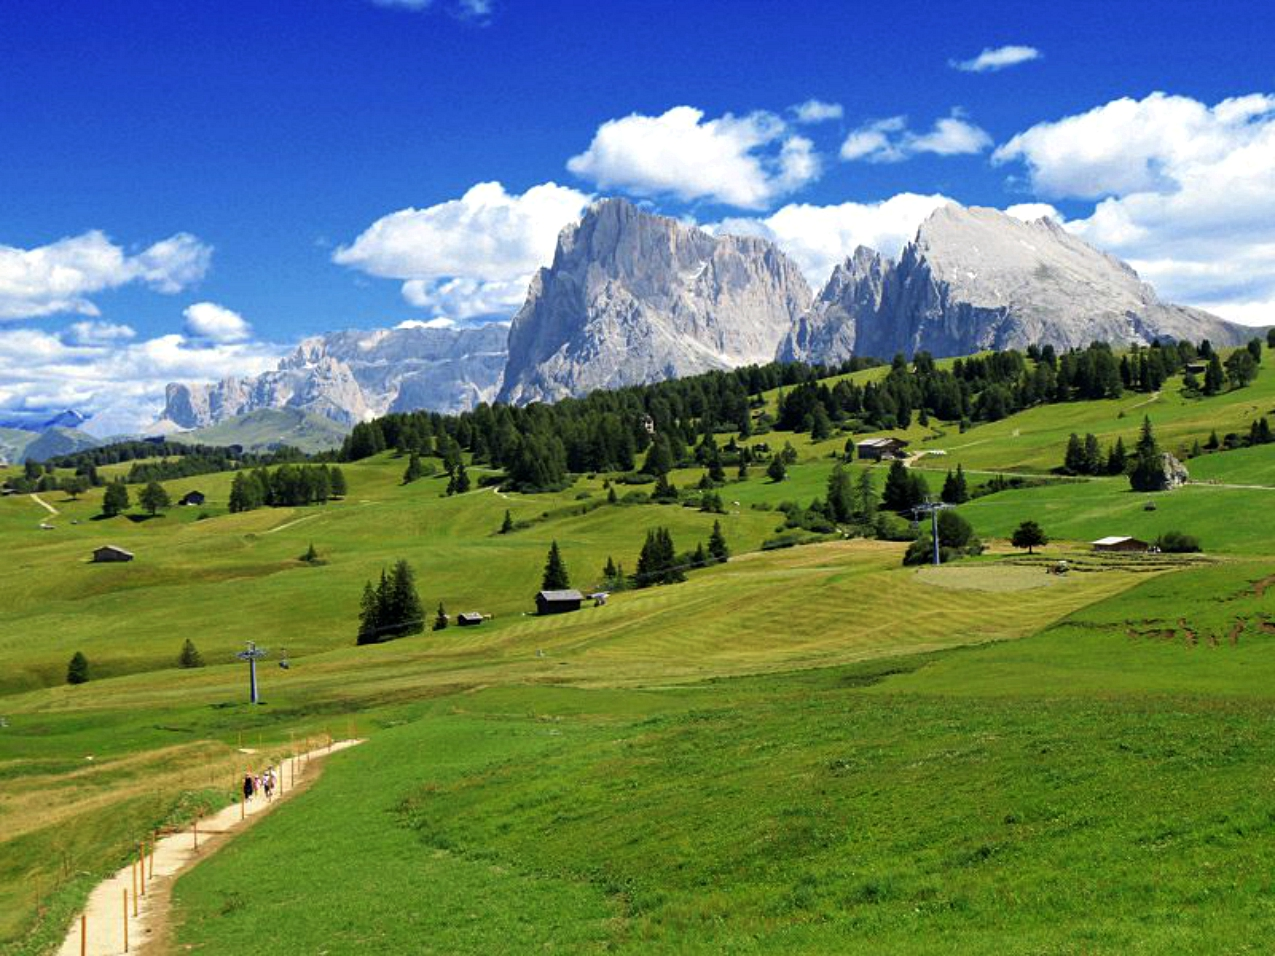 #TravelTips: alla scoperta dell'Alpe di Siusi, alessia milanese, thechilicool, fashion blog, fashion blogger